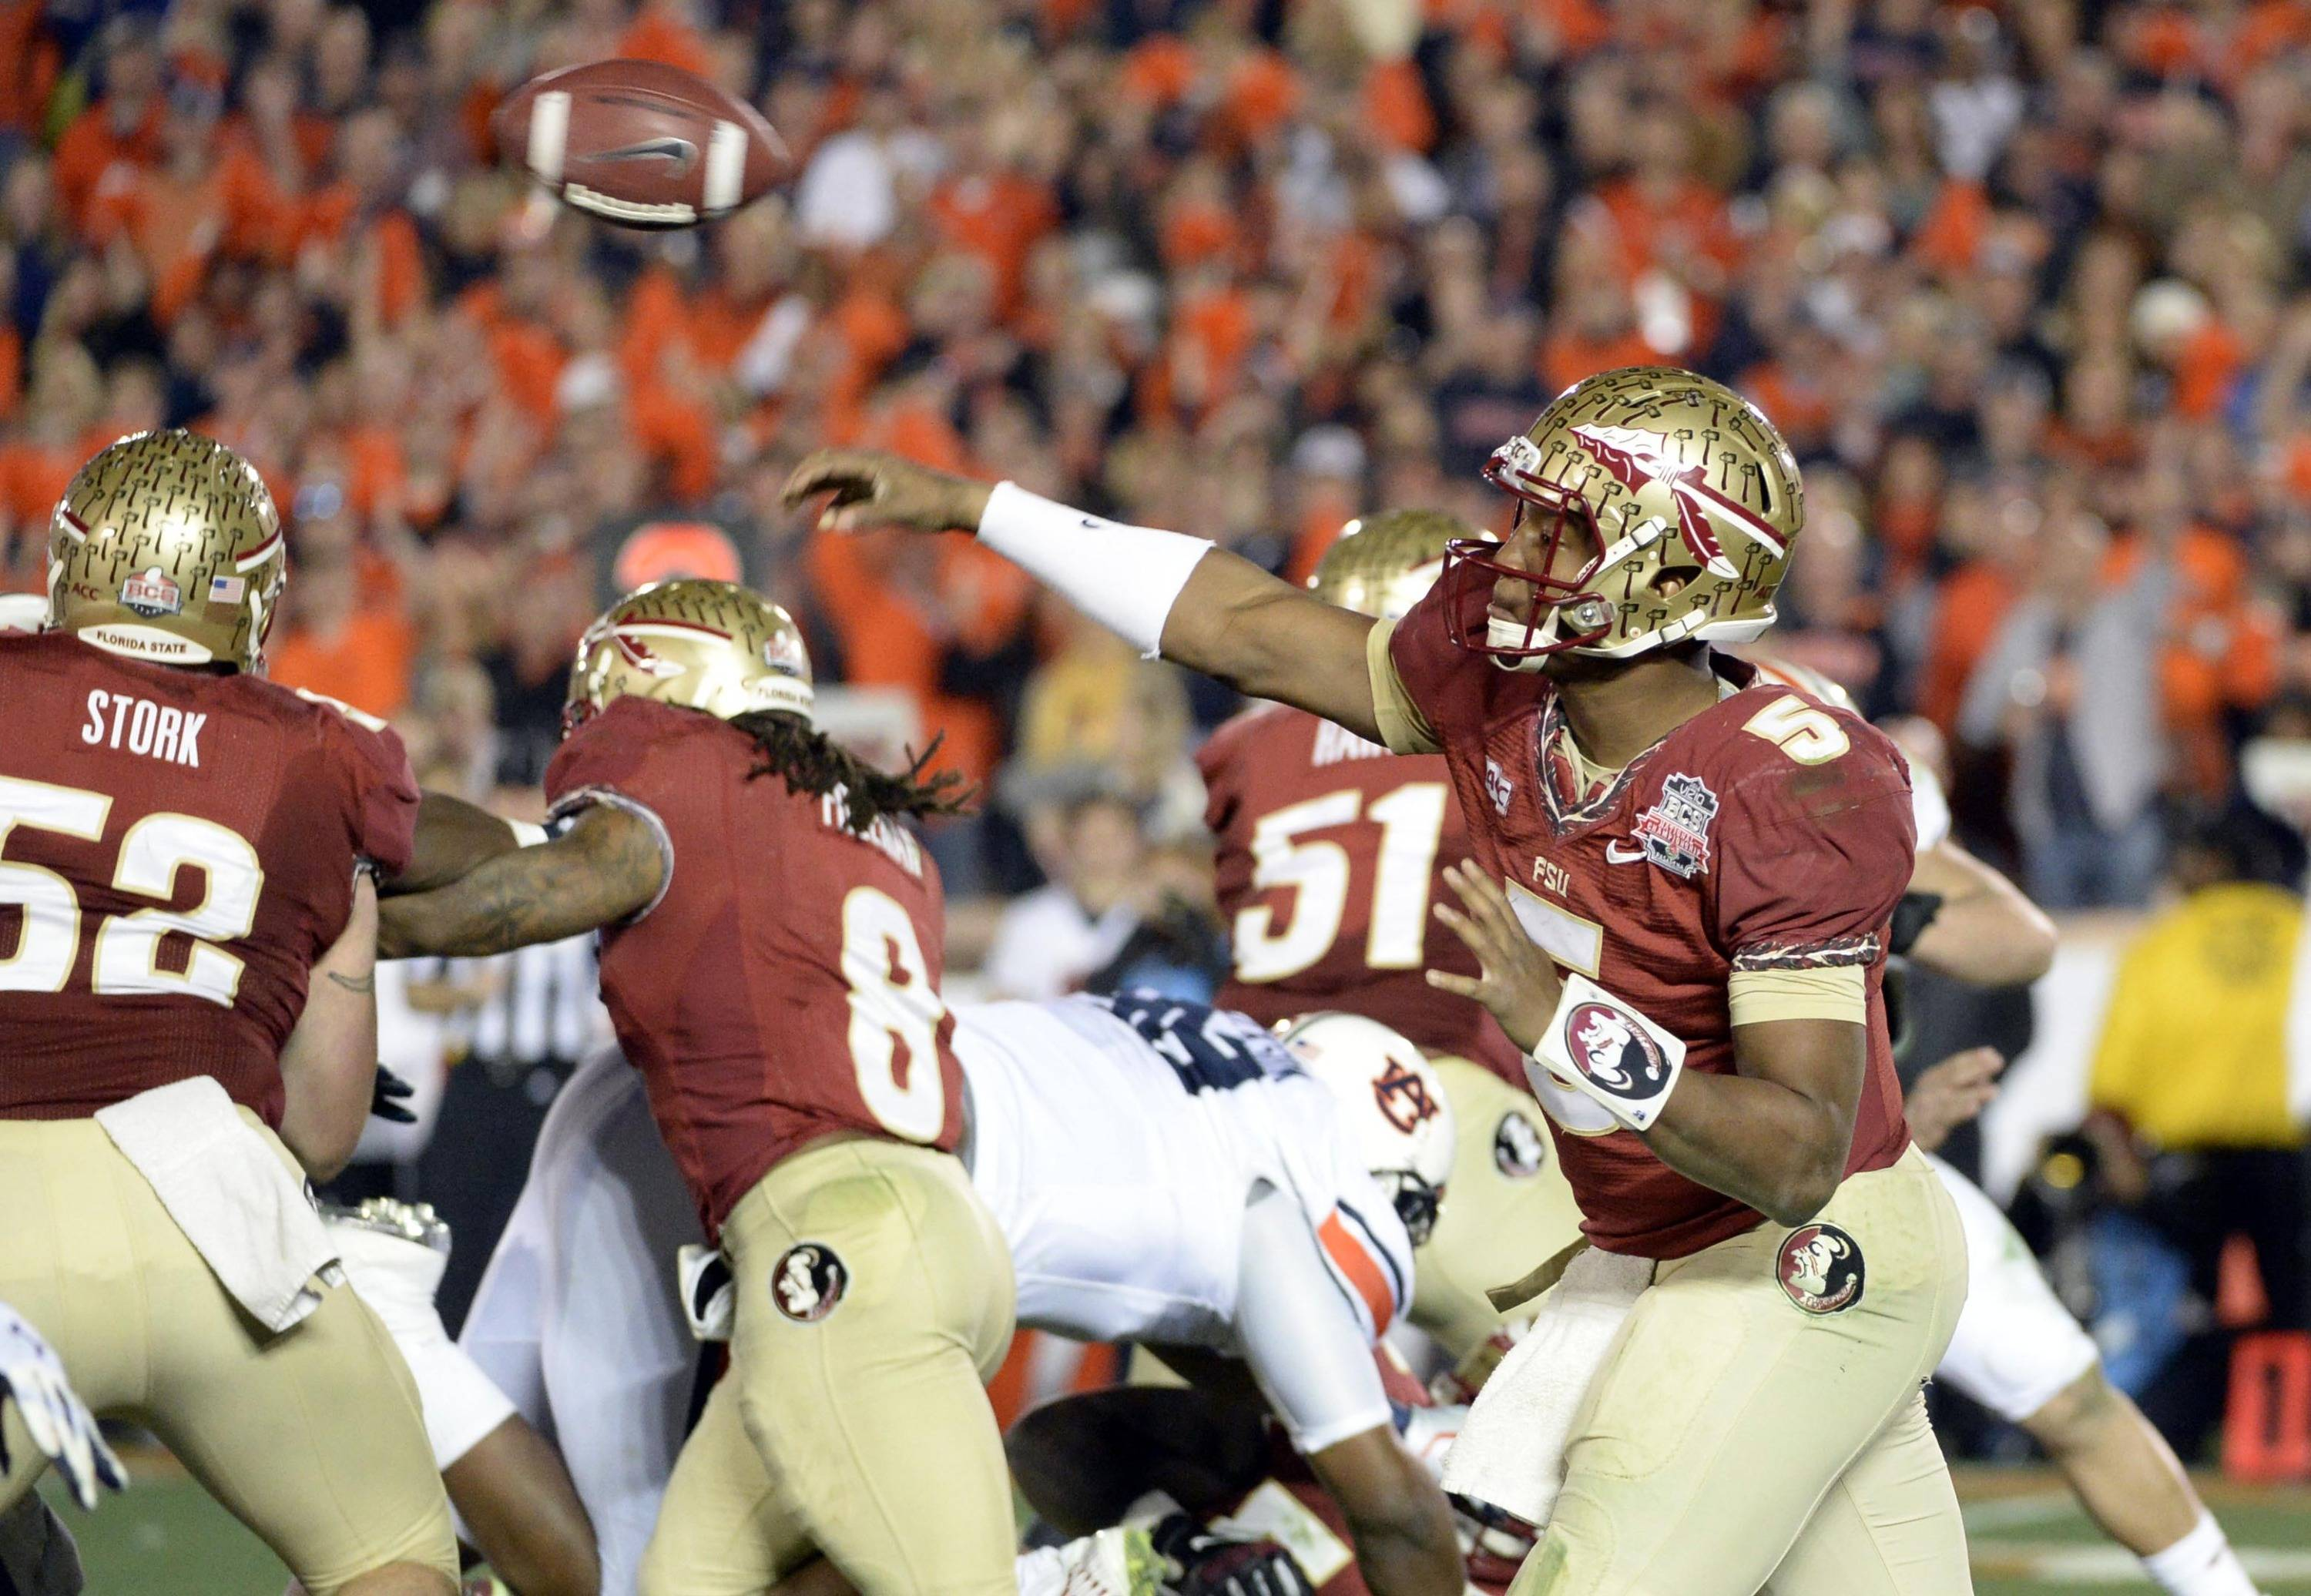 Jan 6, 2014; Pasadena, CA, USA; Florida State Seminoles quarterback Jameis Winston (5) throws against the Auburn Tigers during the second half of the 2014 BCS National Championship game at the Rose Bowl.  Mandatory Credit: Richard Mackson-USA TODAY Sports